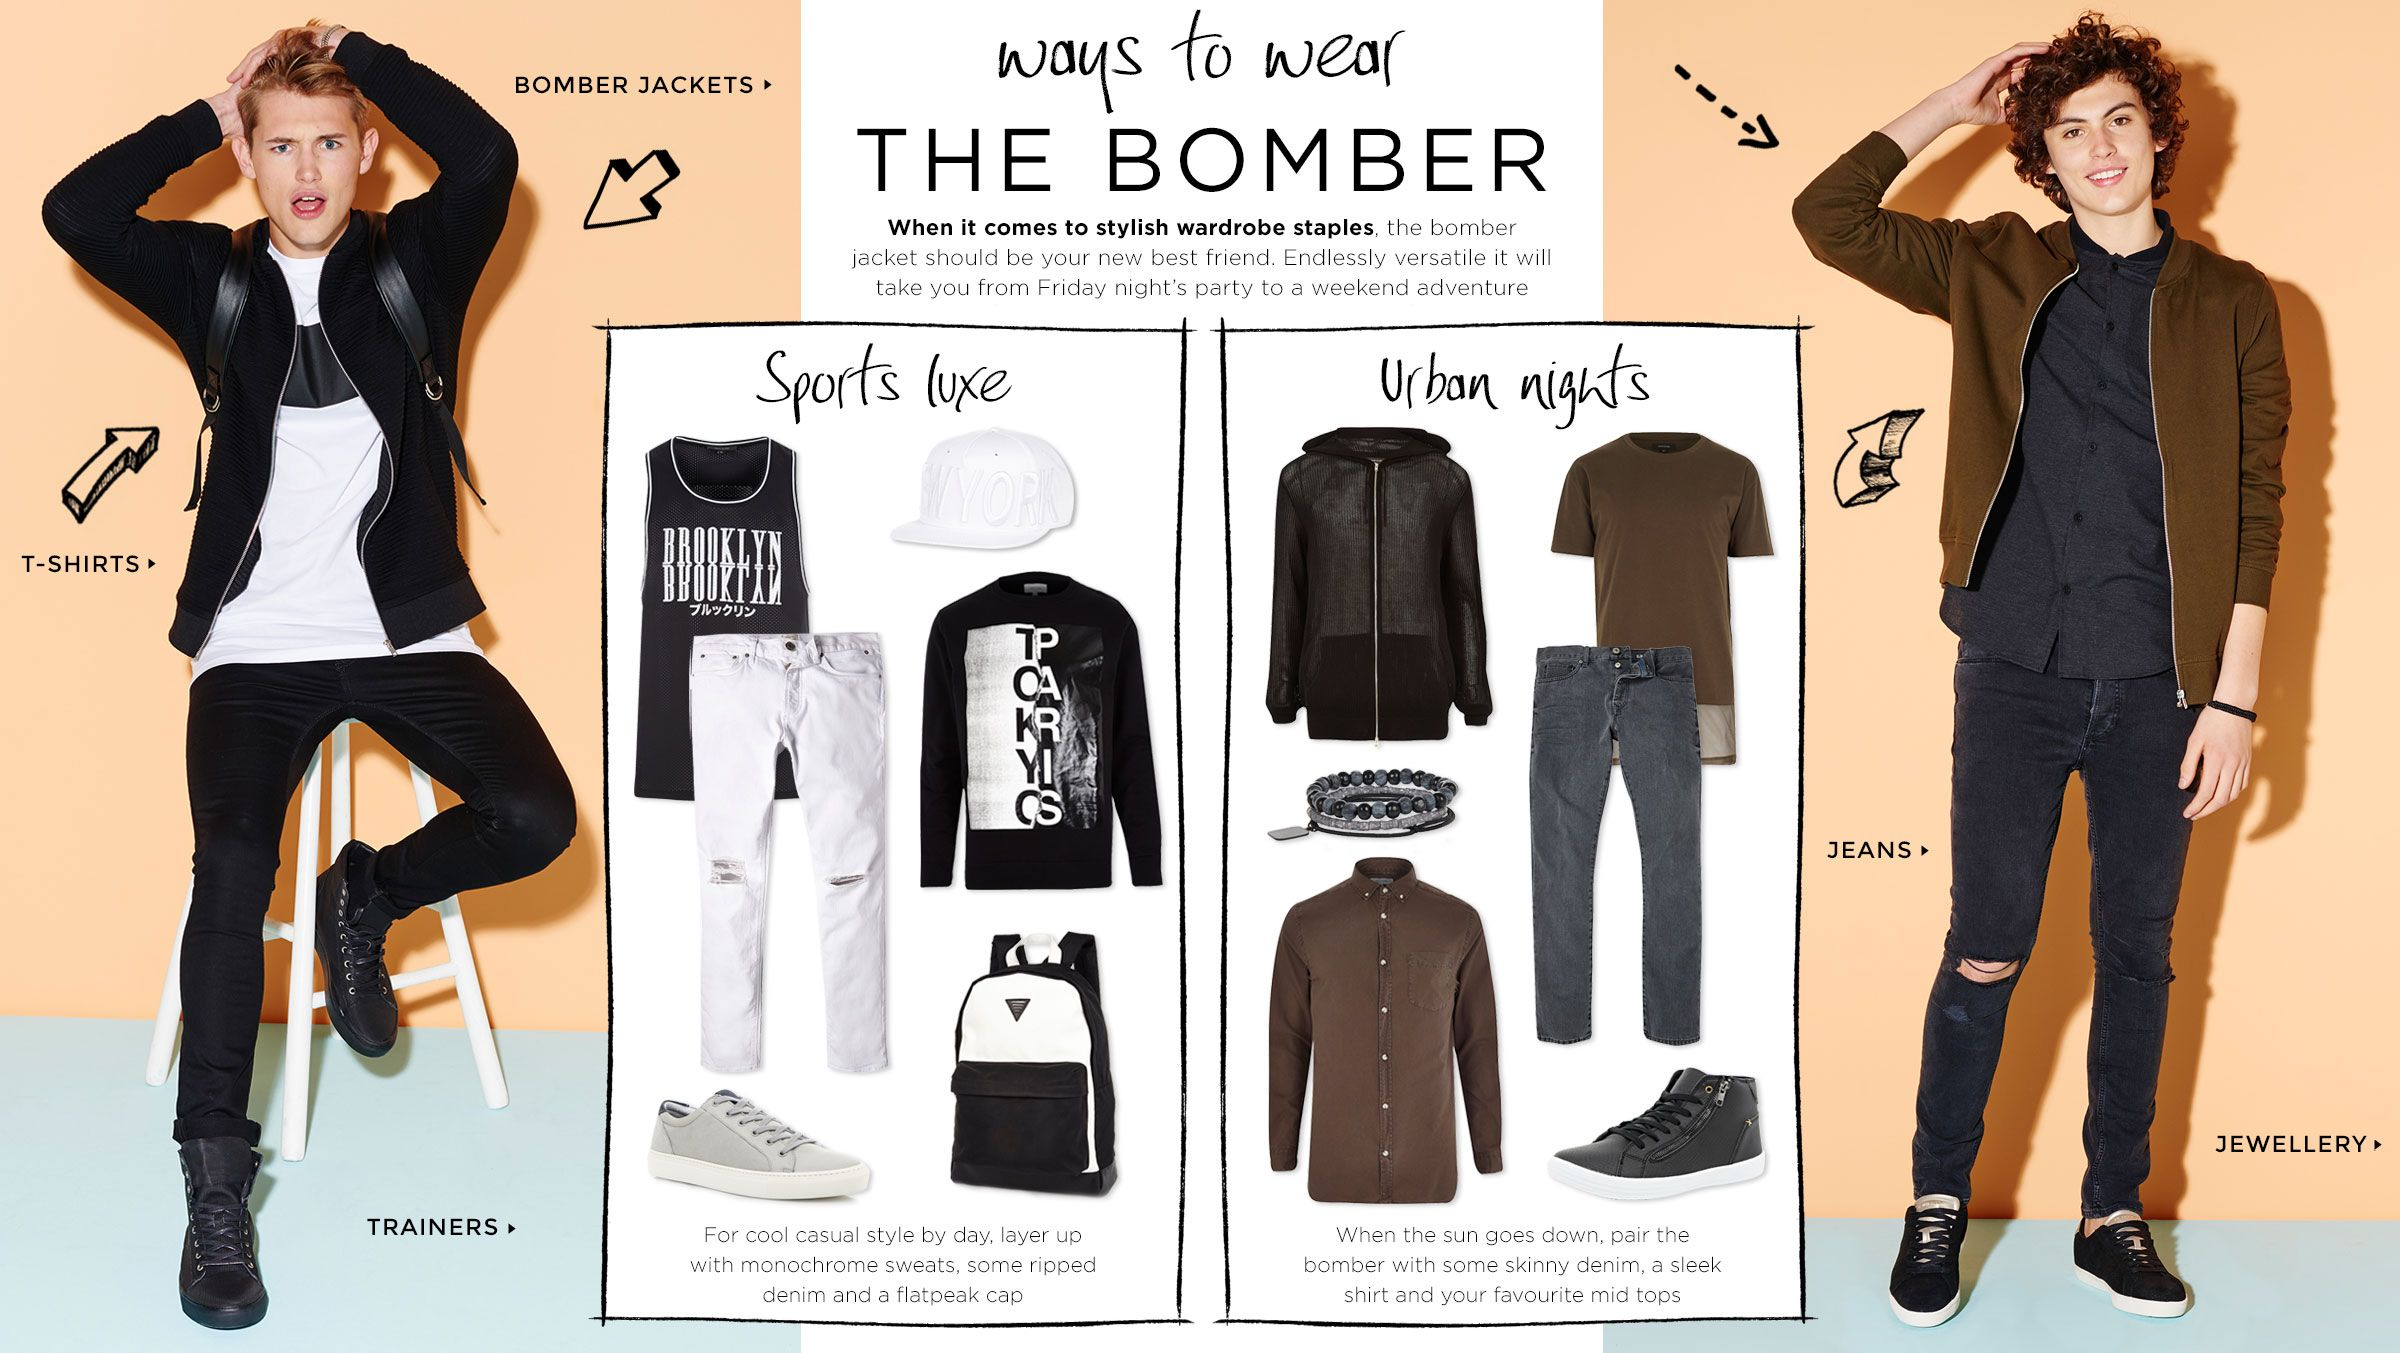 WAYS TO WEAR THE BOMBER